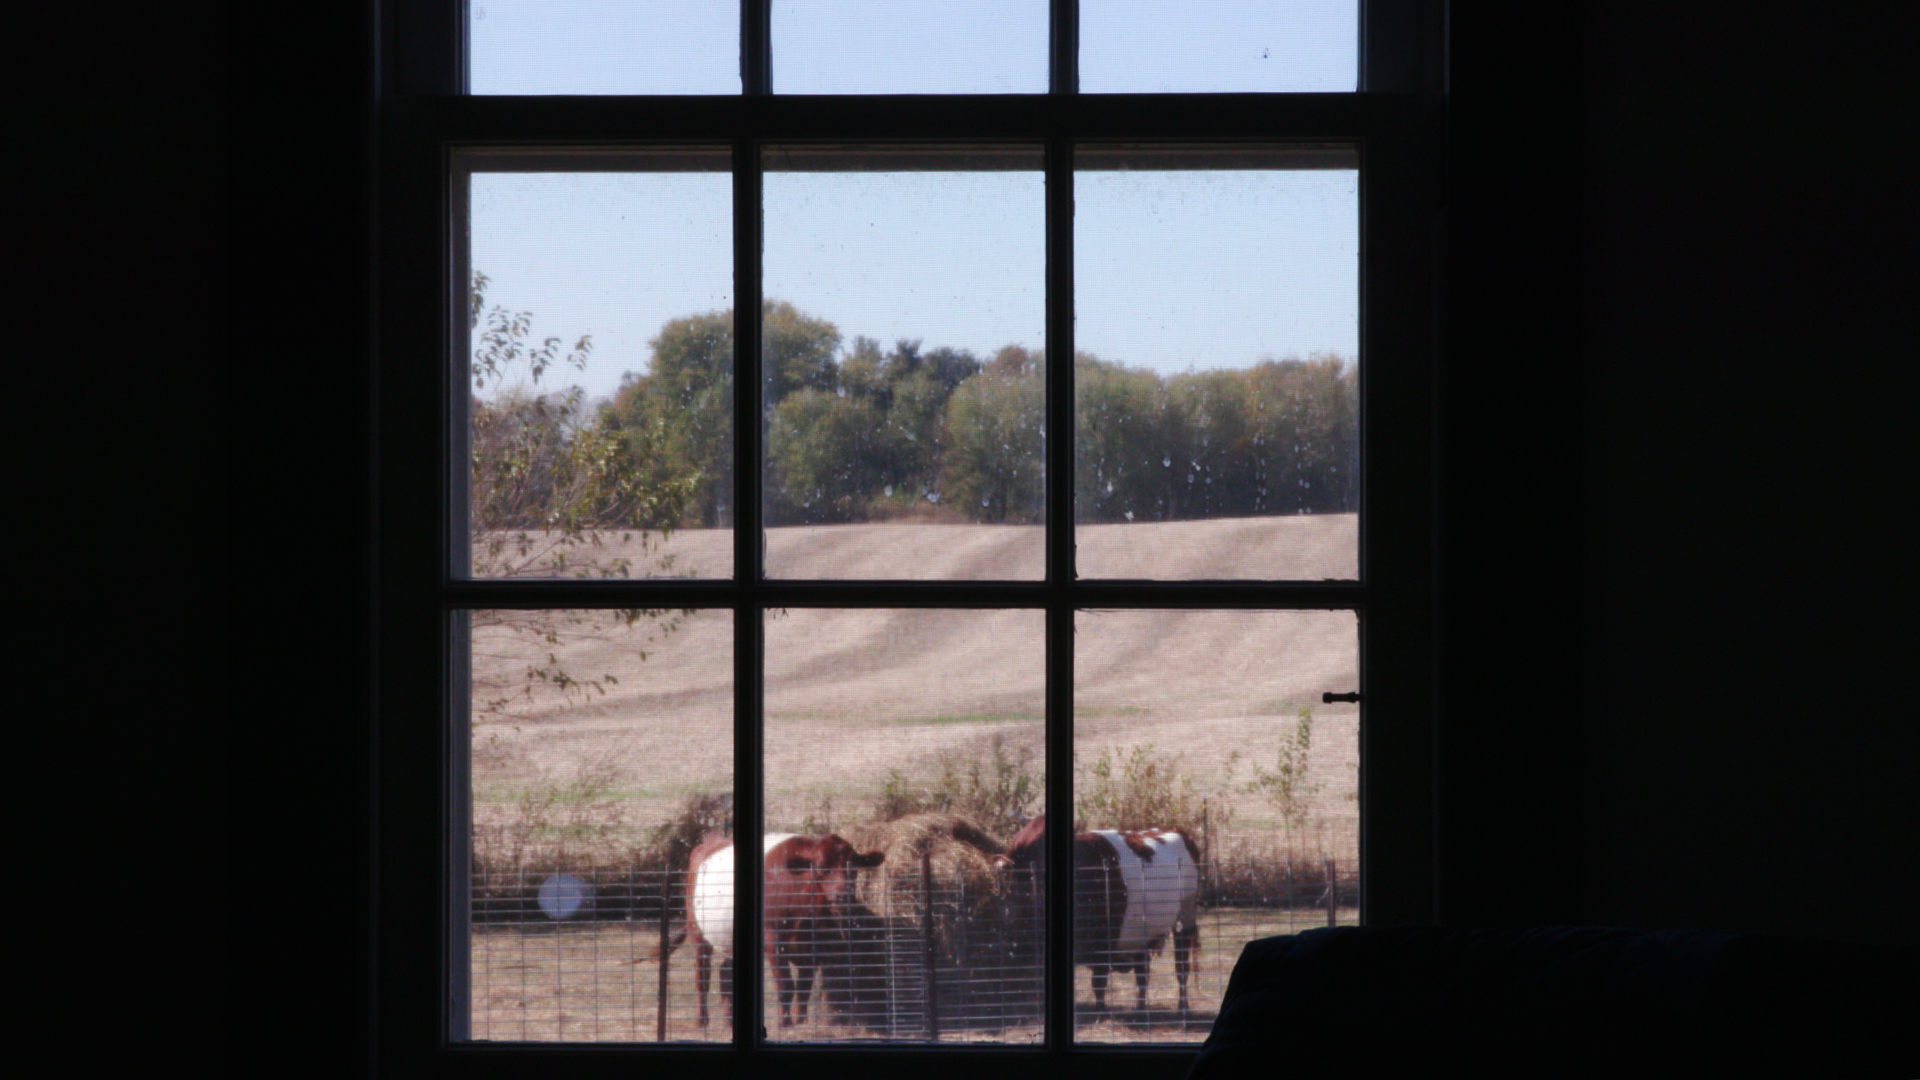 A view of cows from inside Hall's home.